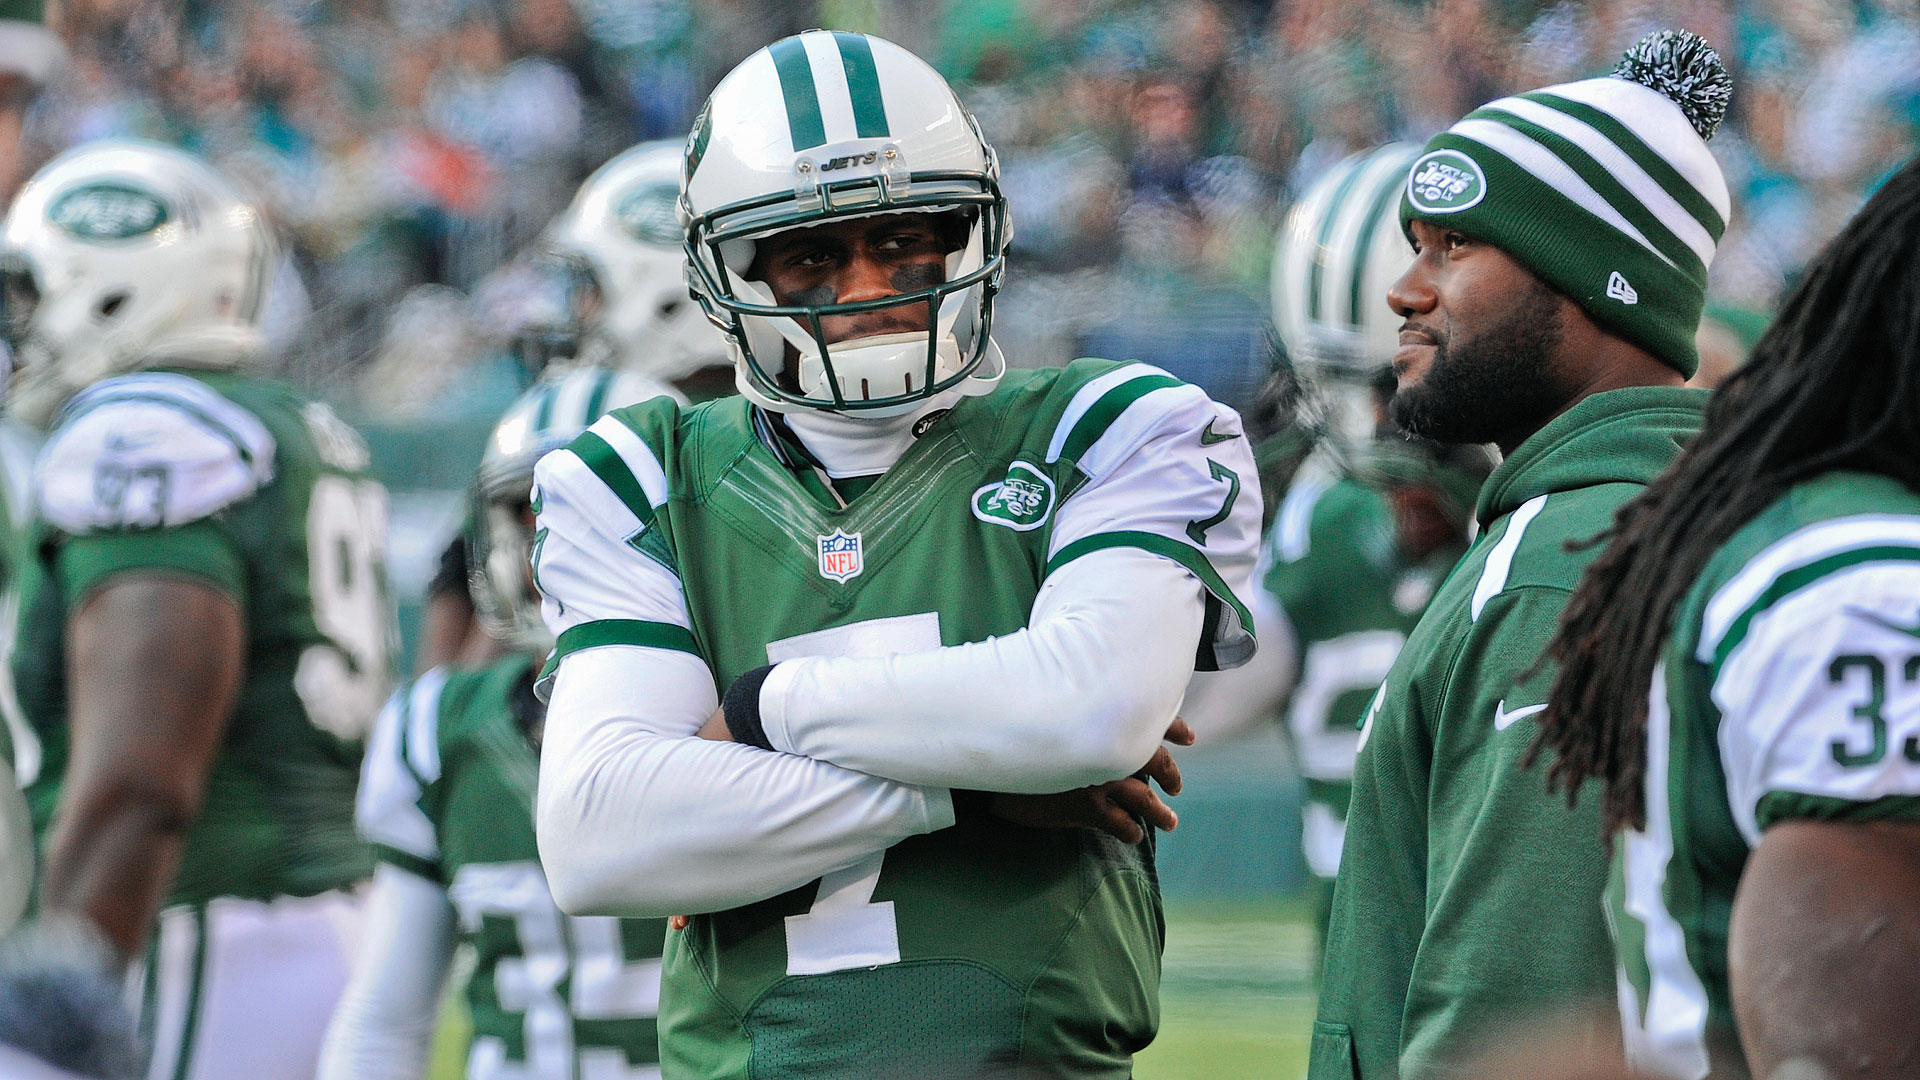 Geno Smith-120113-AP-FTR.jpg